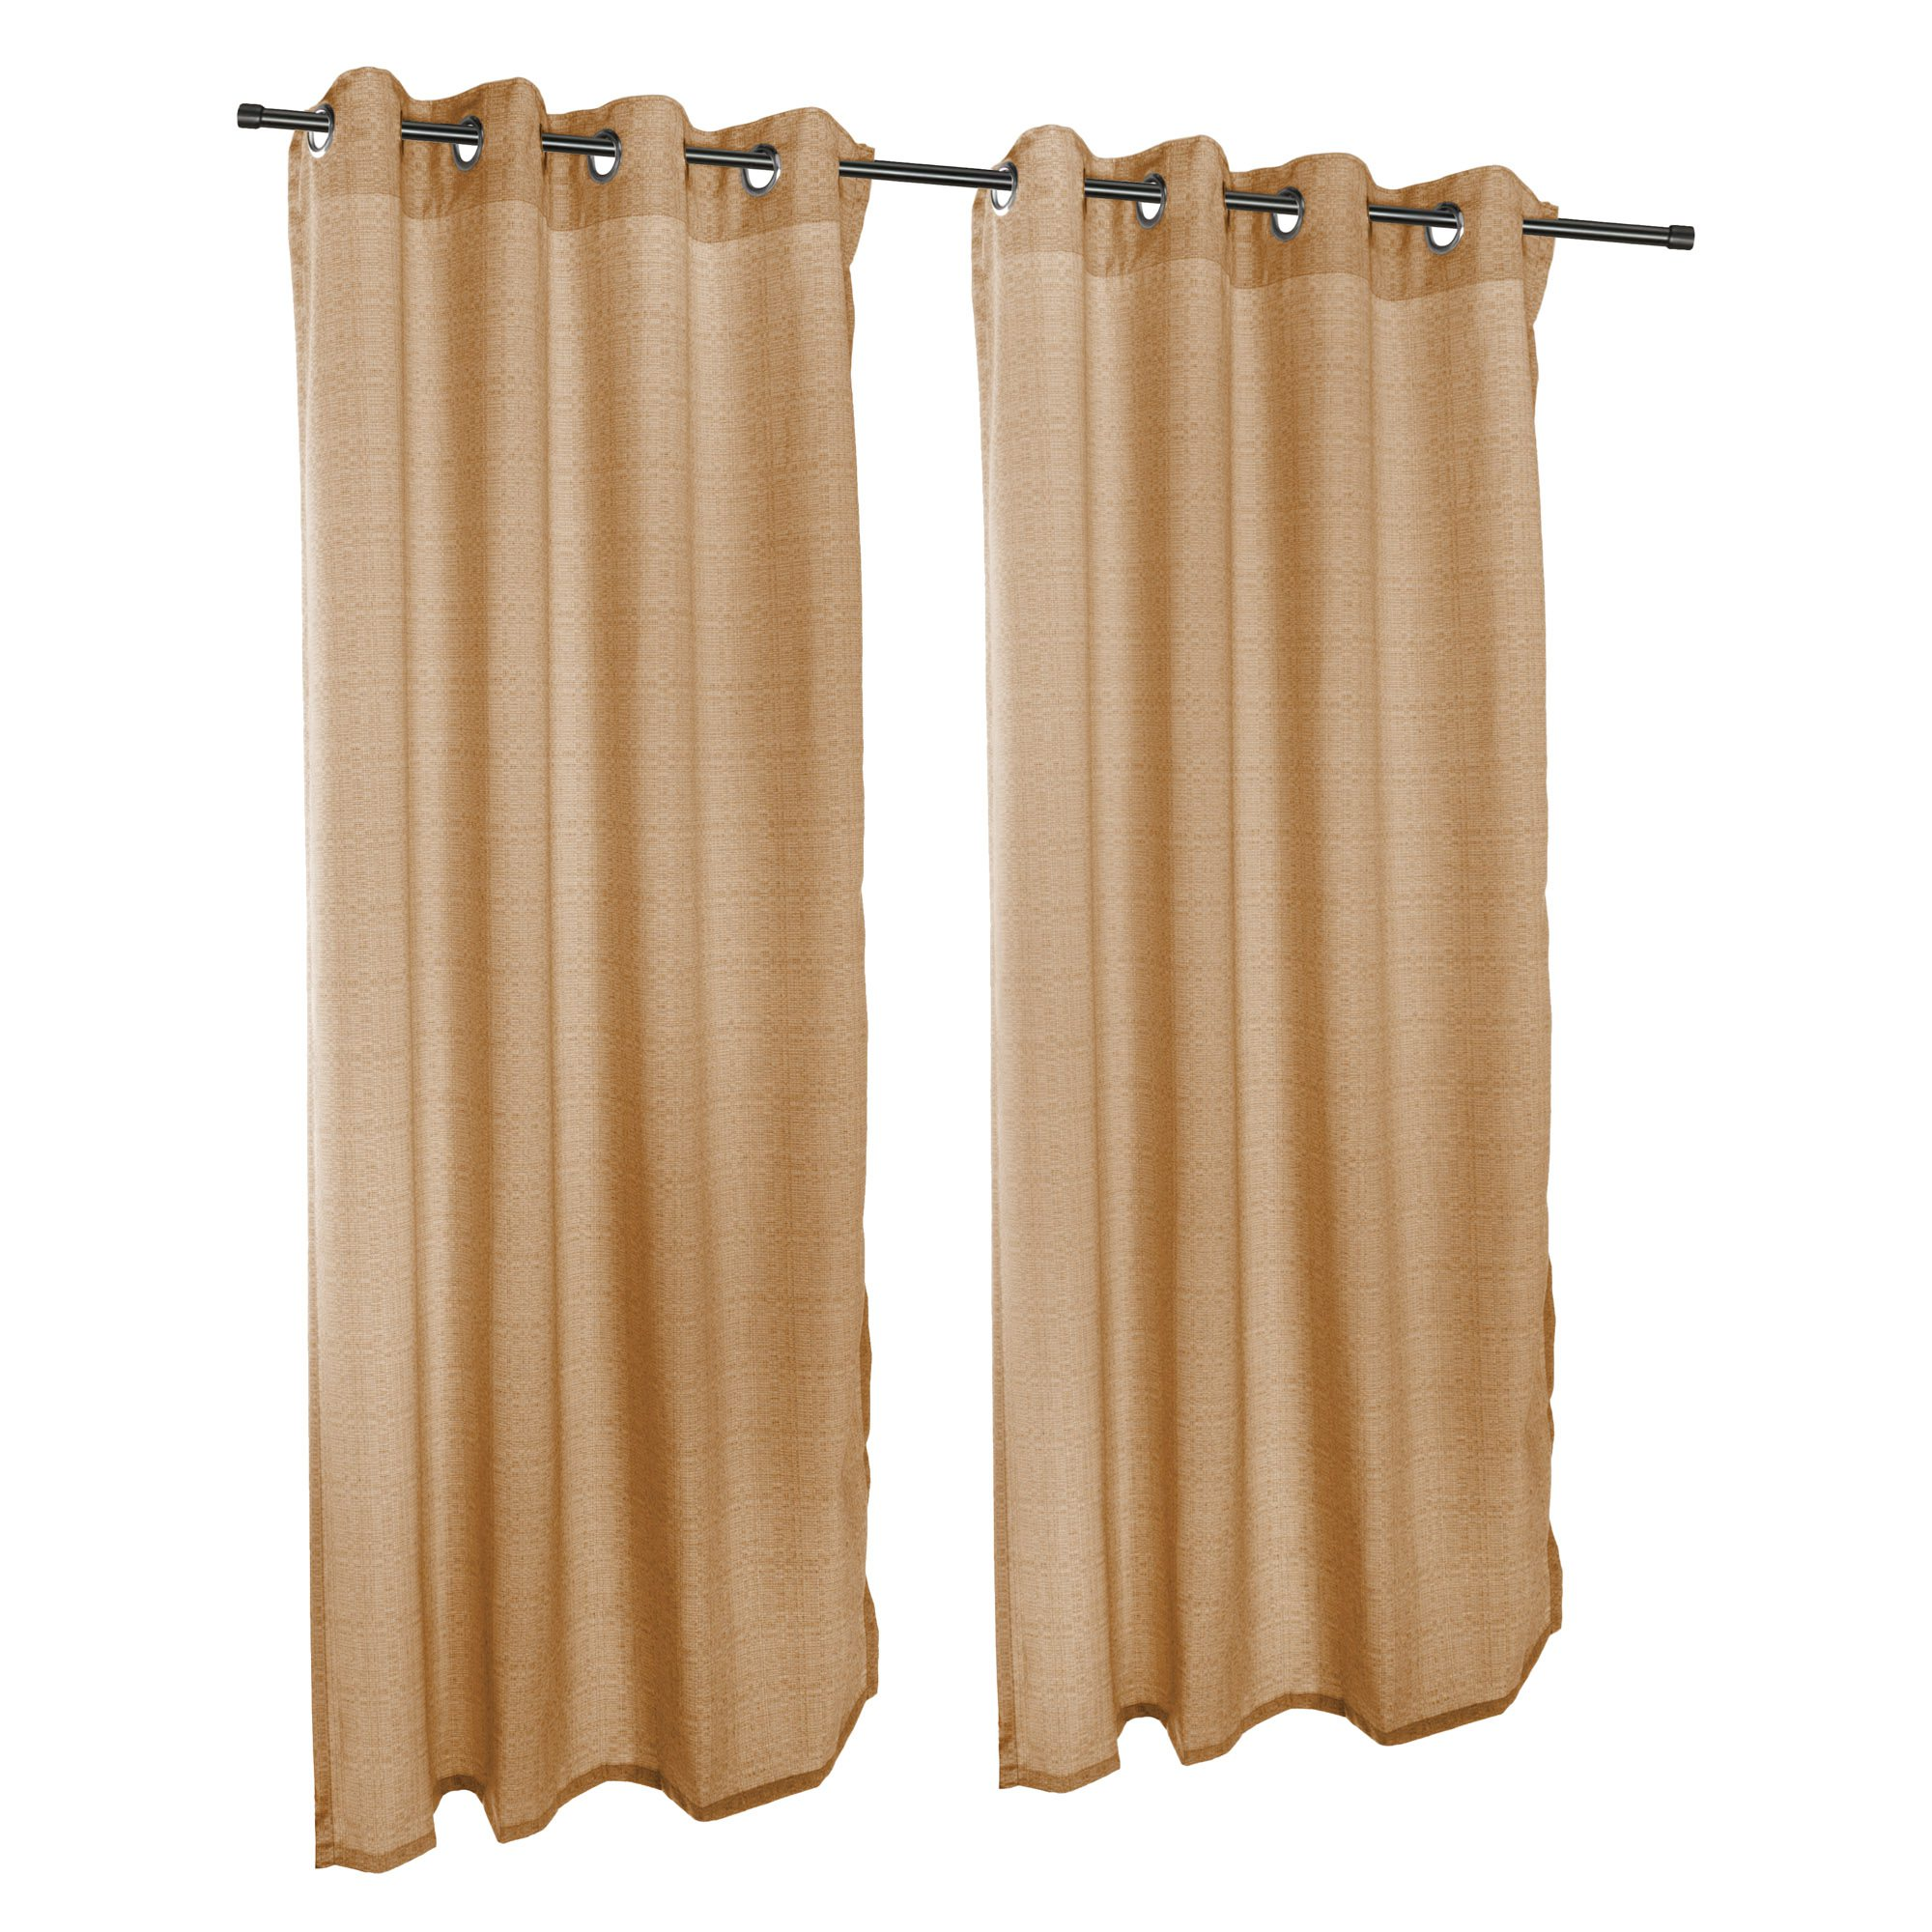 Sunbrella Outdoor Curtain With Nickel Grommets - Linen Sesame by Essentials by DFO